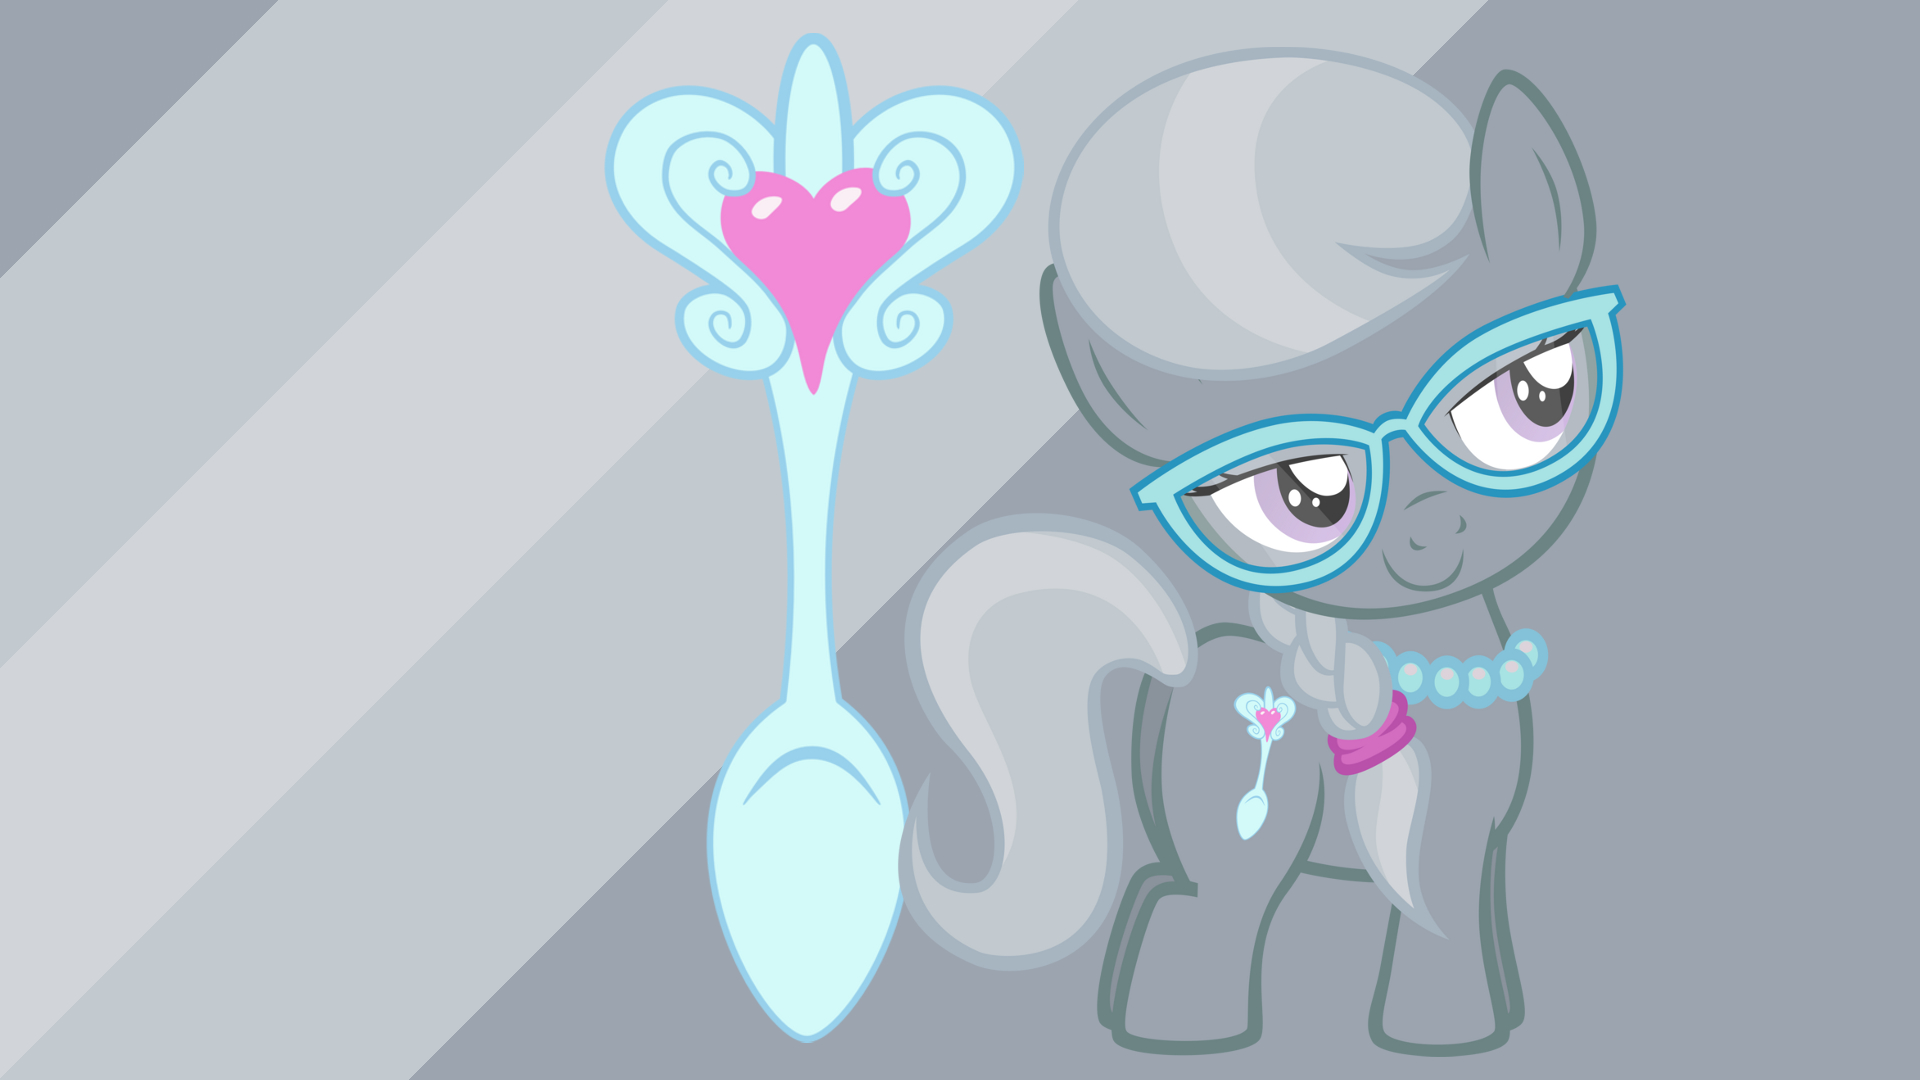 Minimalist Wallpaper 39: Silver Spoon by miketueur, Softfang and The-Smiling-Pony